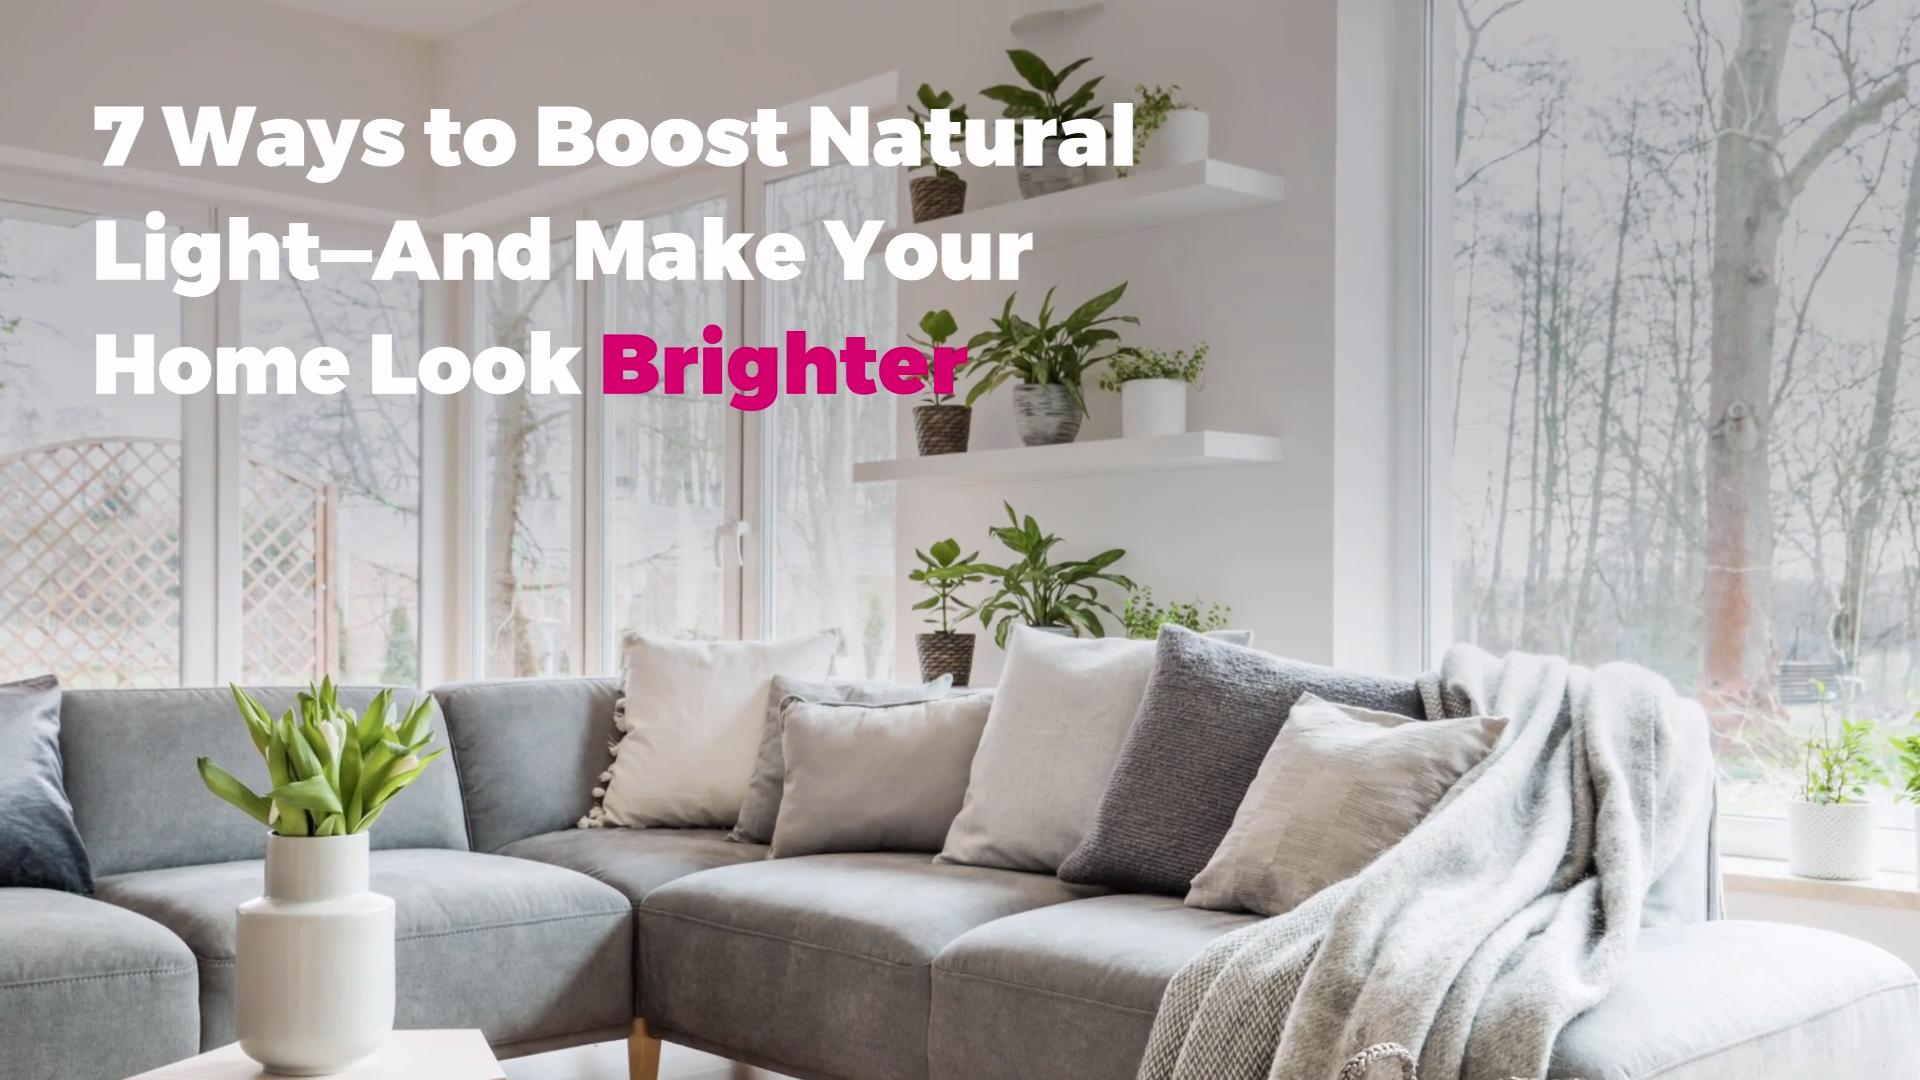 7 Ways to Boost Natural Light—And Make Your Home Look Brighter